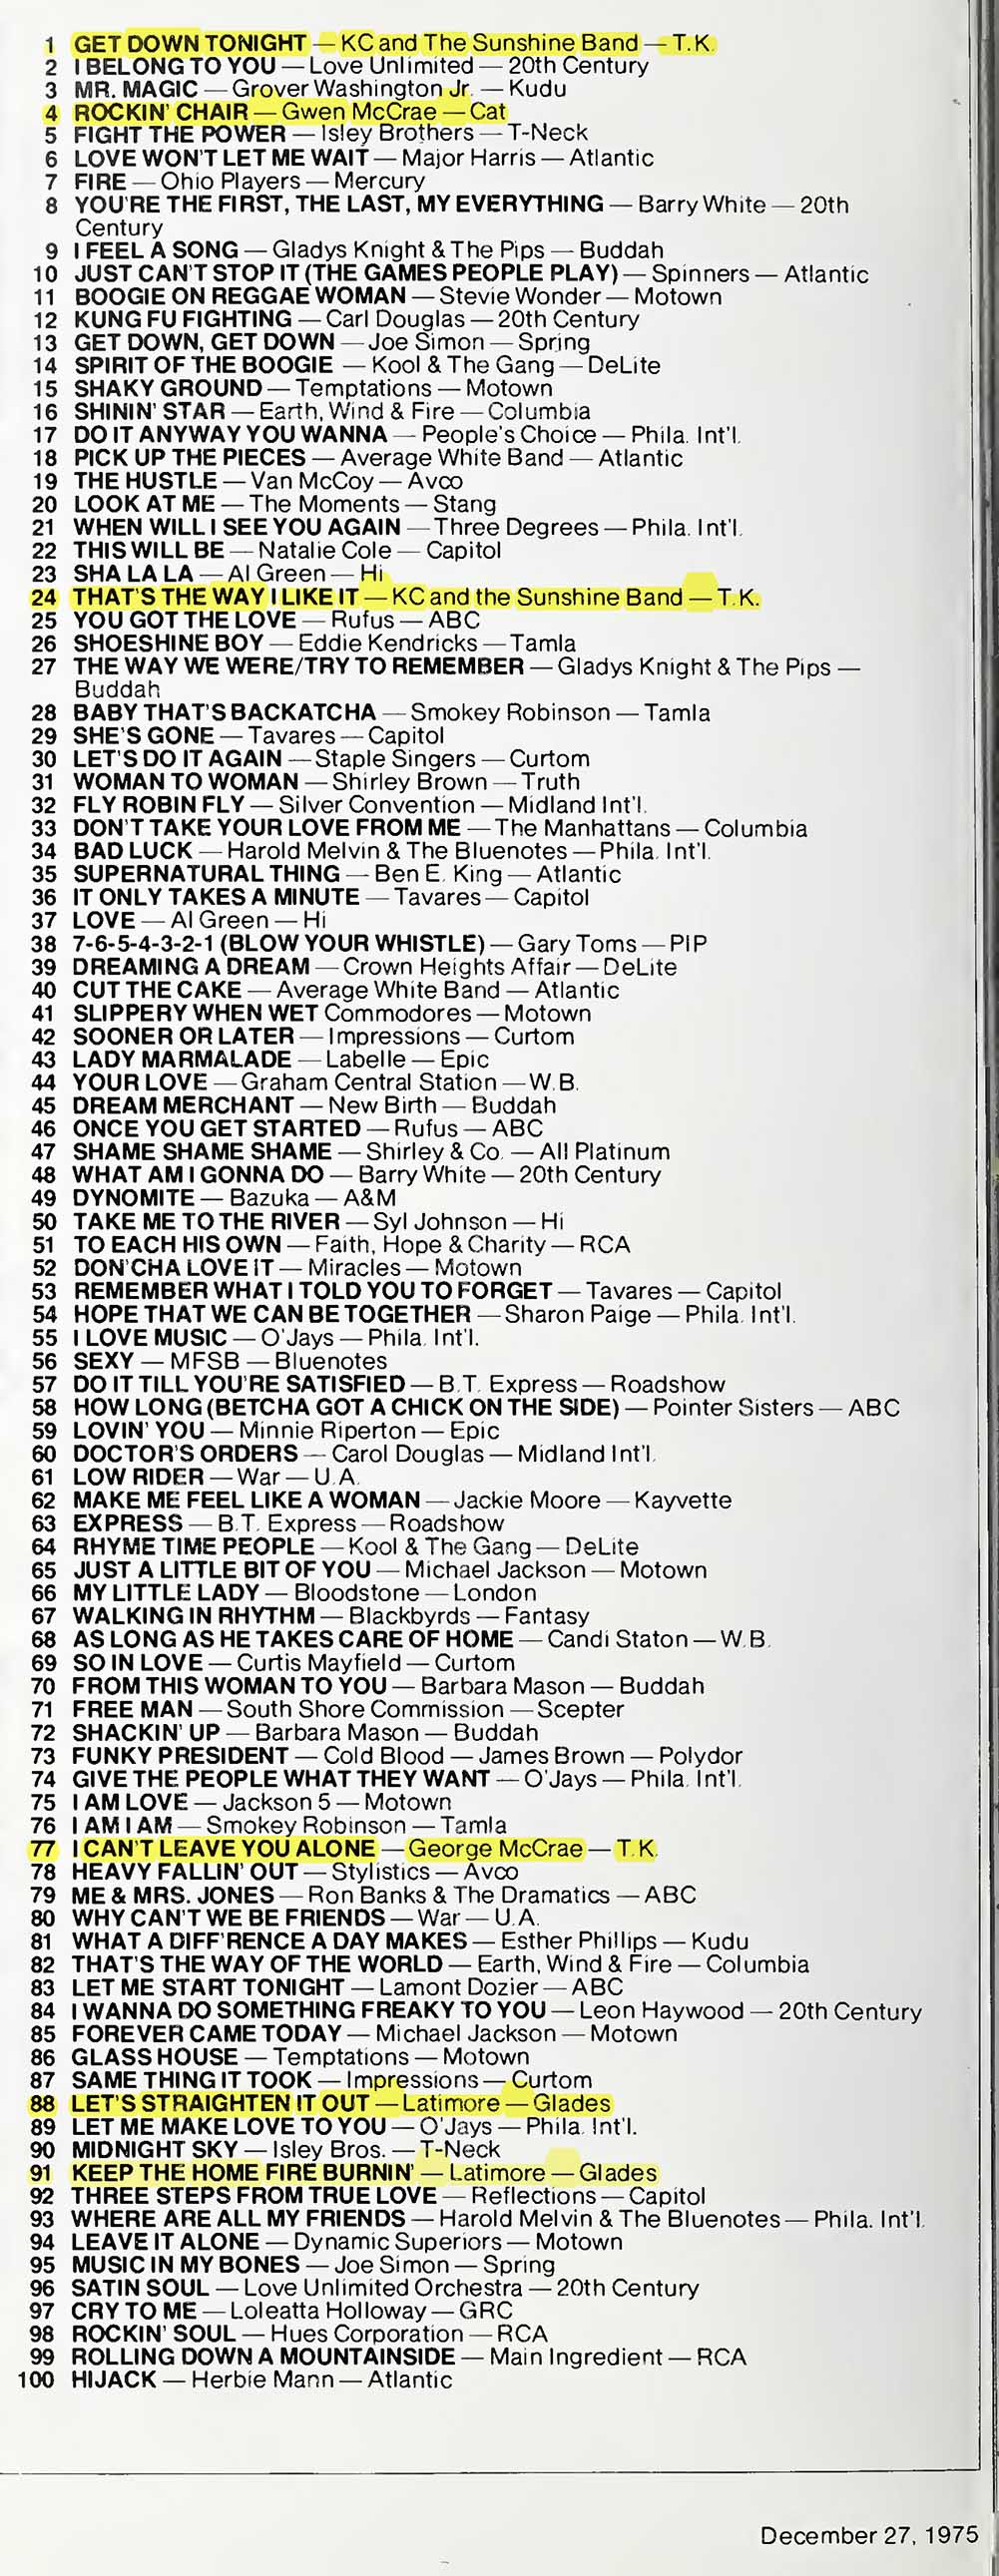 Top 100 R&B Singles of 1975 (full list)